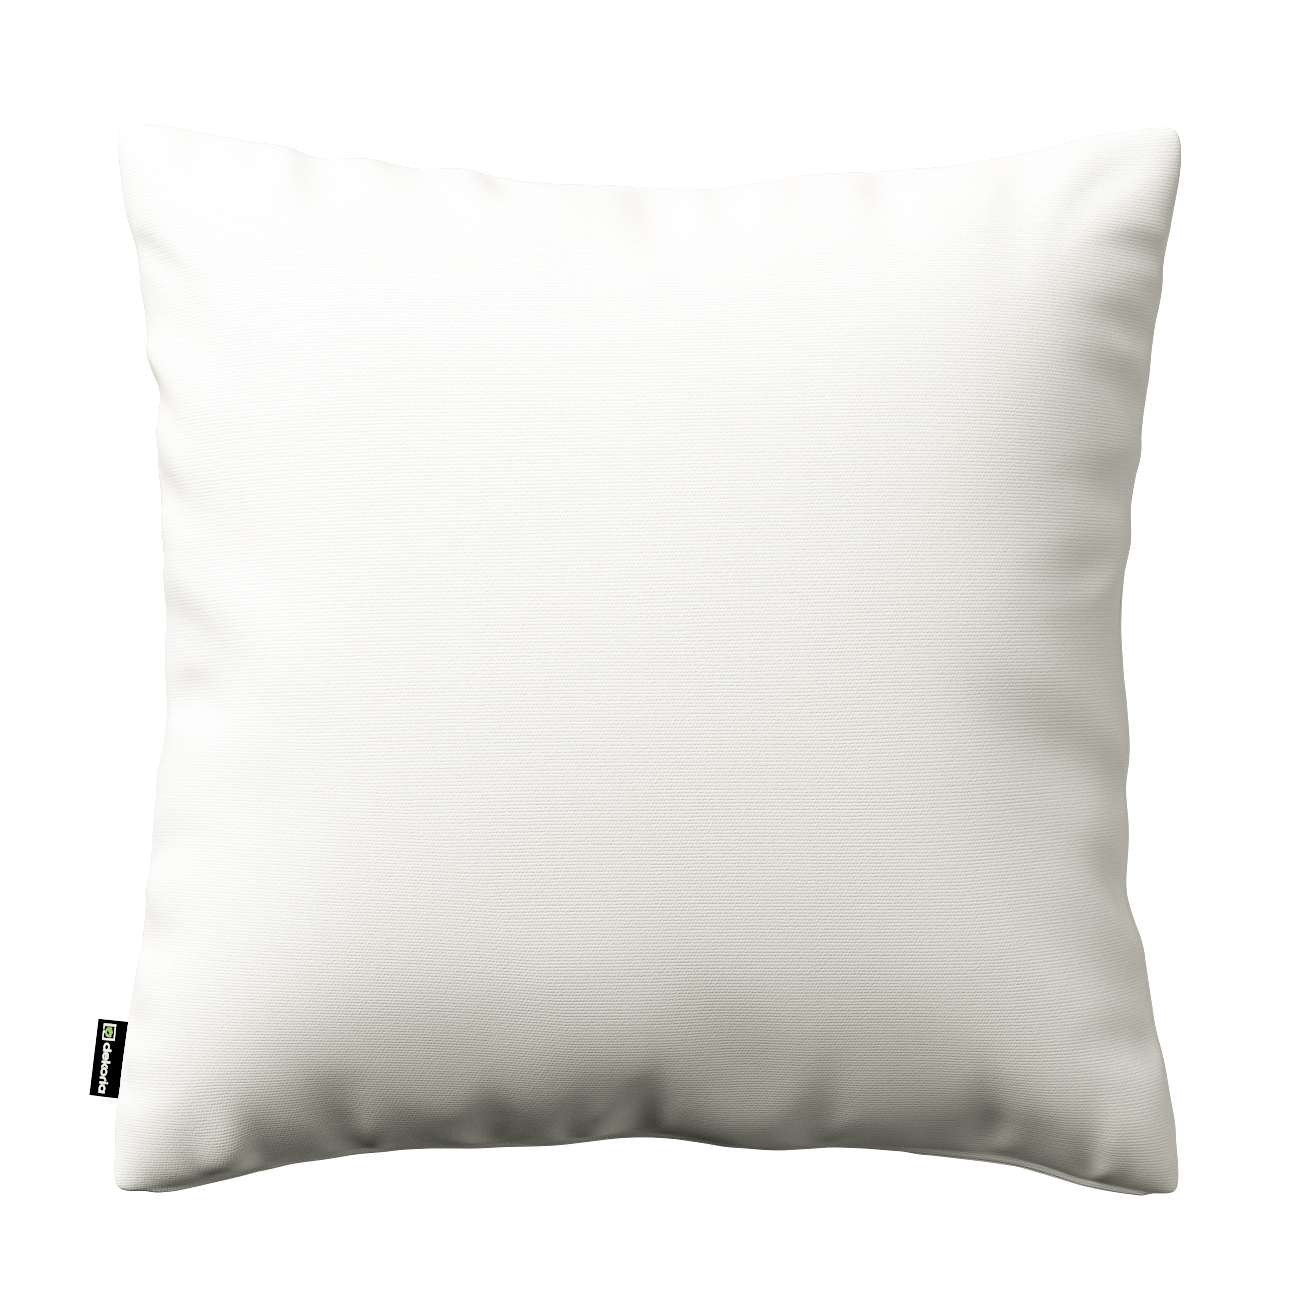 Kinga cushion cover 43 × 43 cm (17 × 17 inch) in collection Panama Cotton, fabric: 702-34